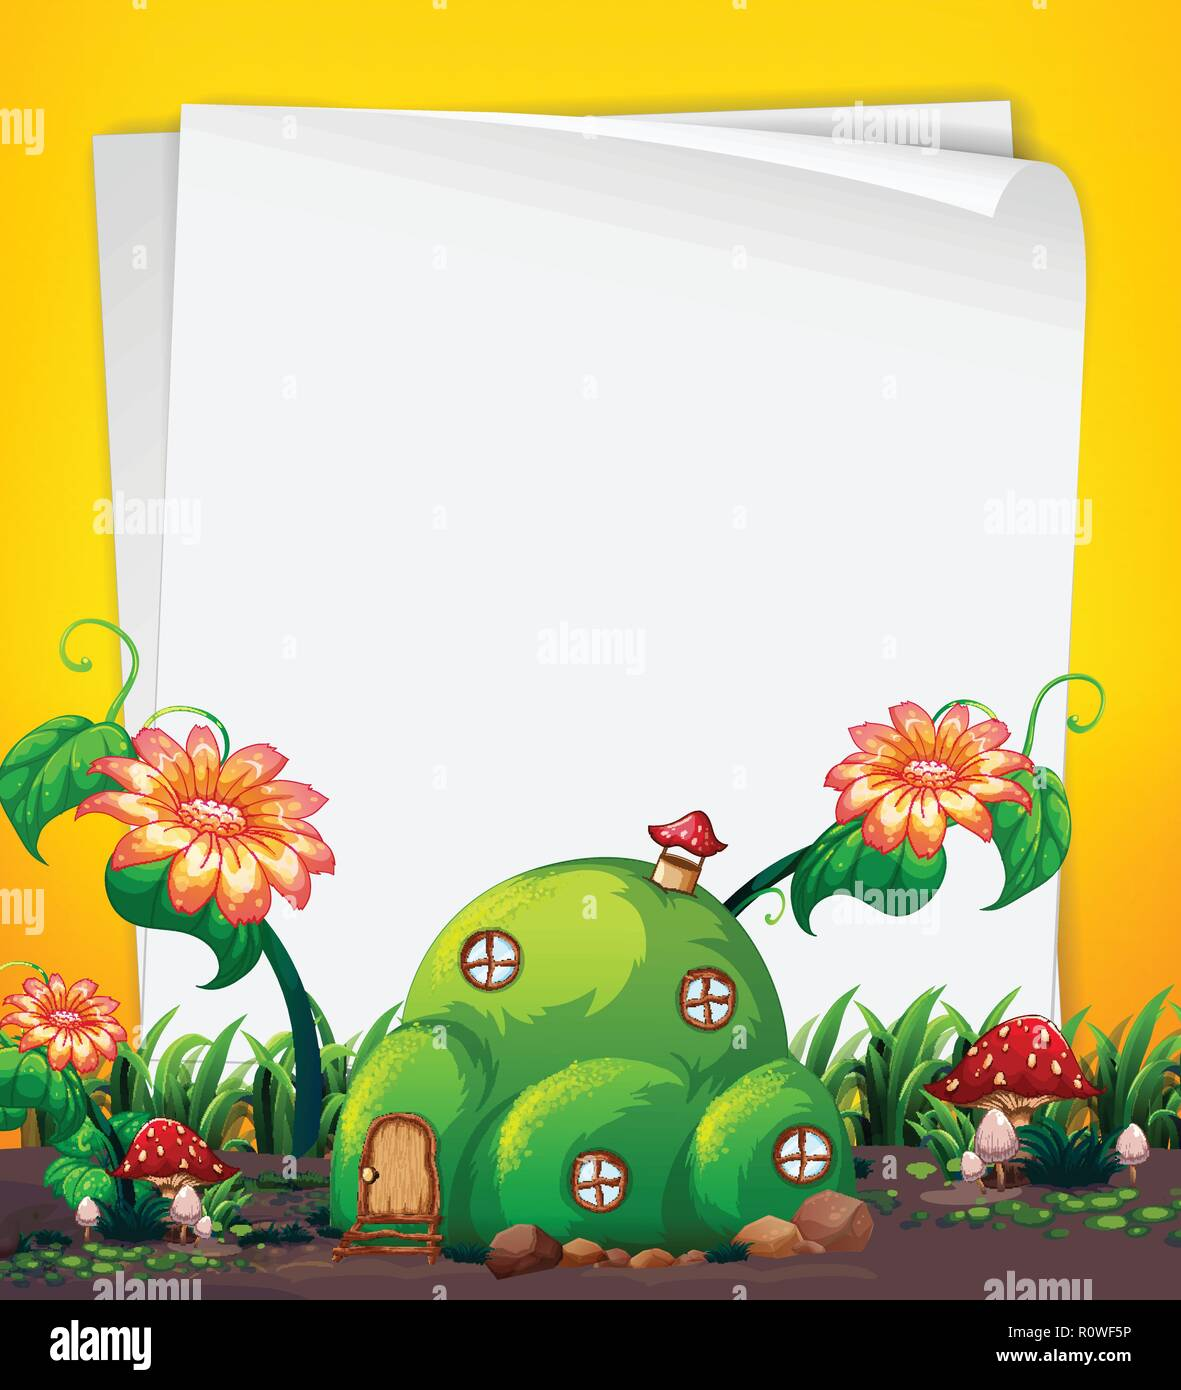 Fairy hill house template illustration - Stock Image